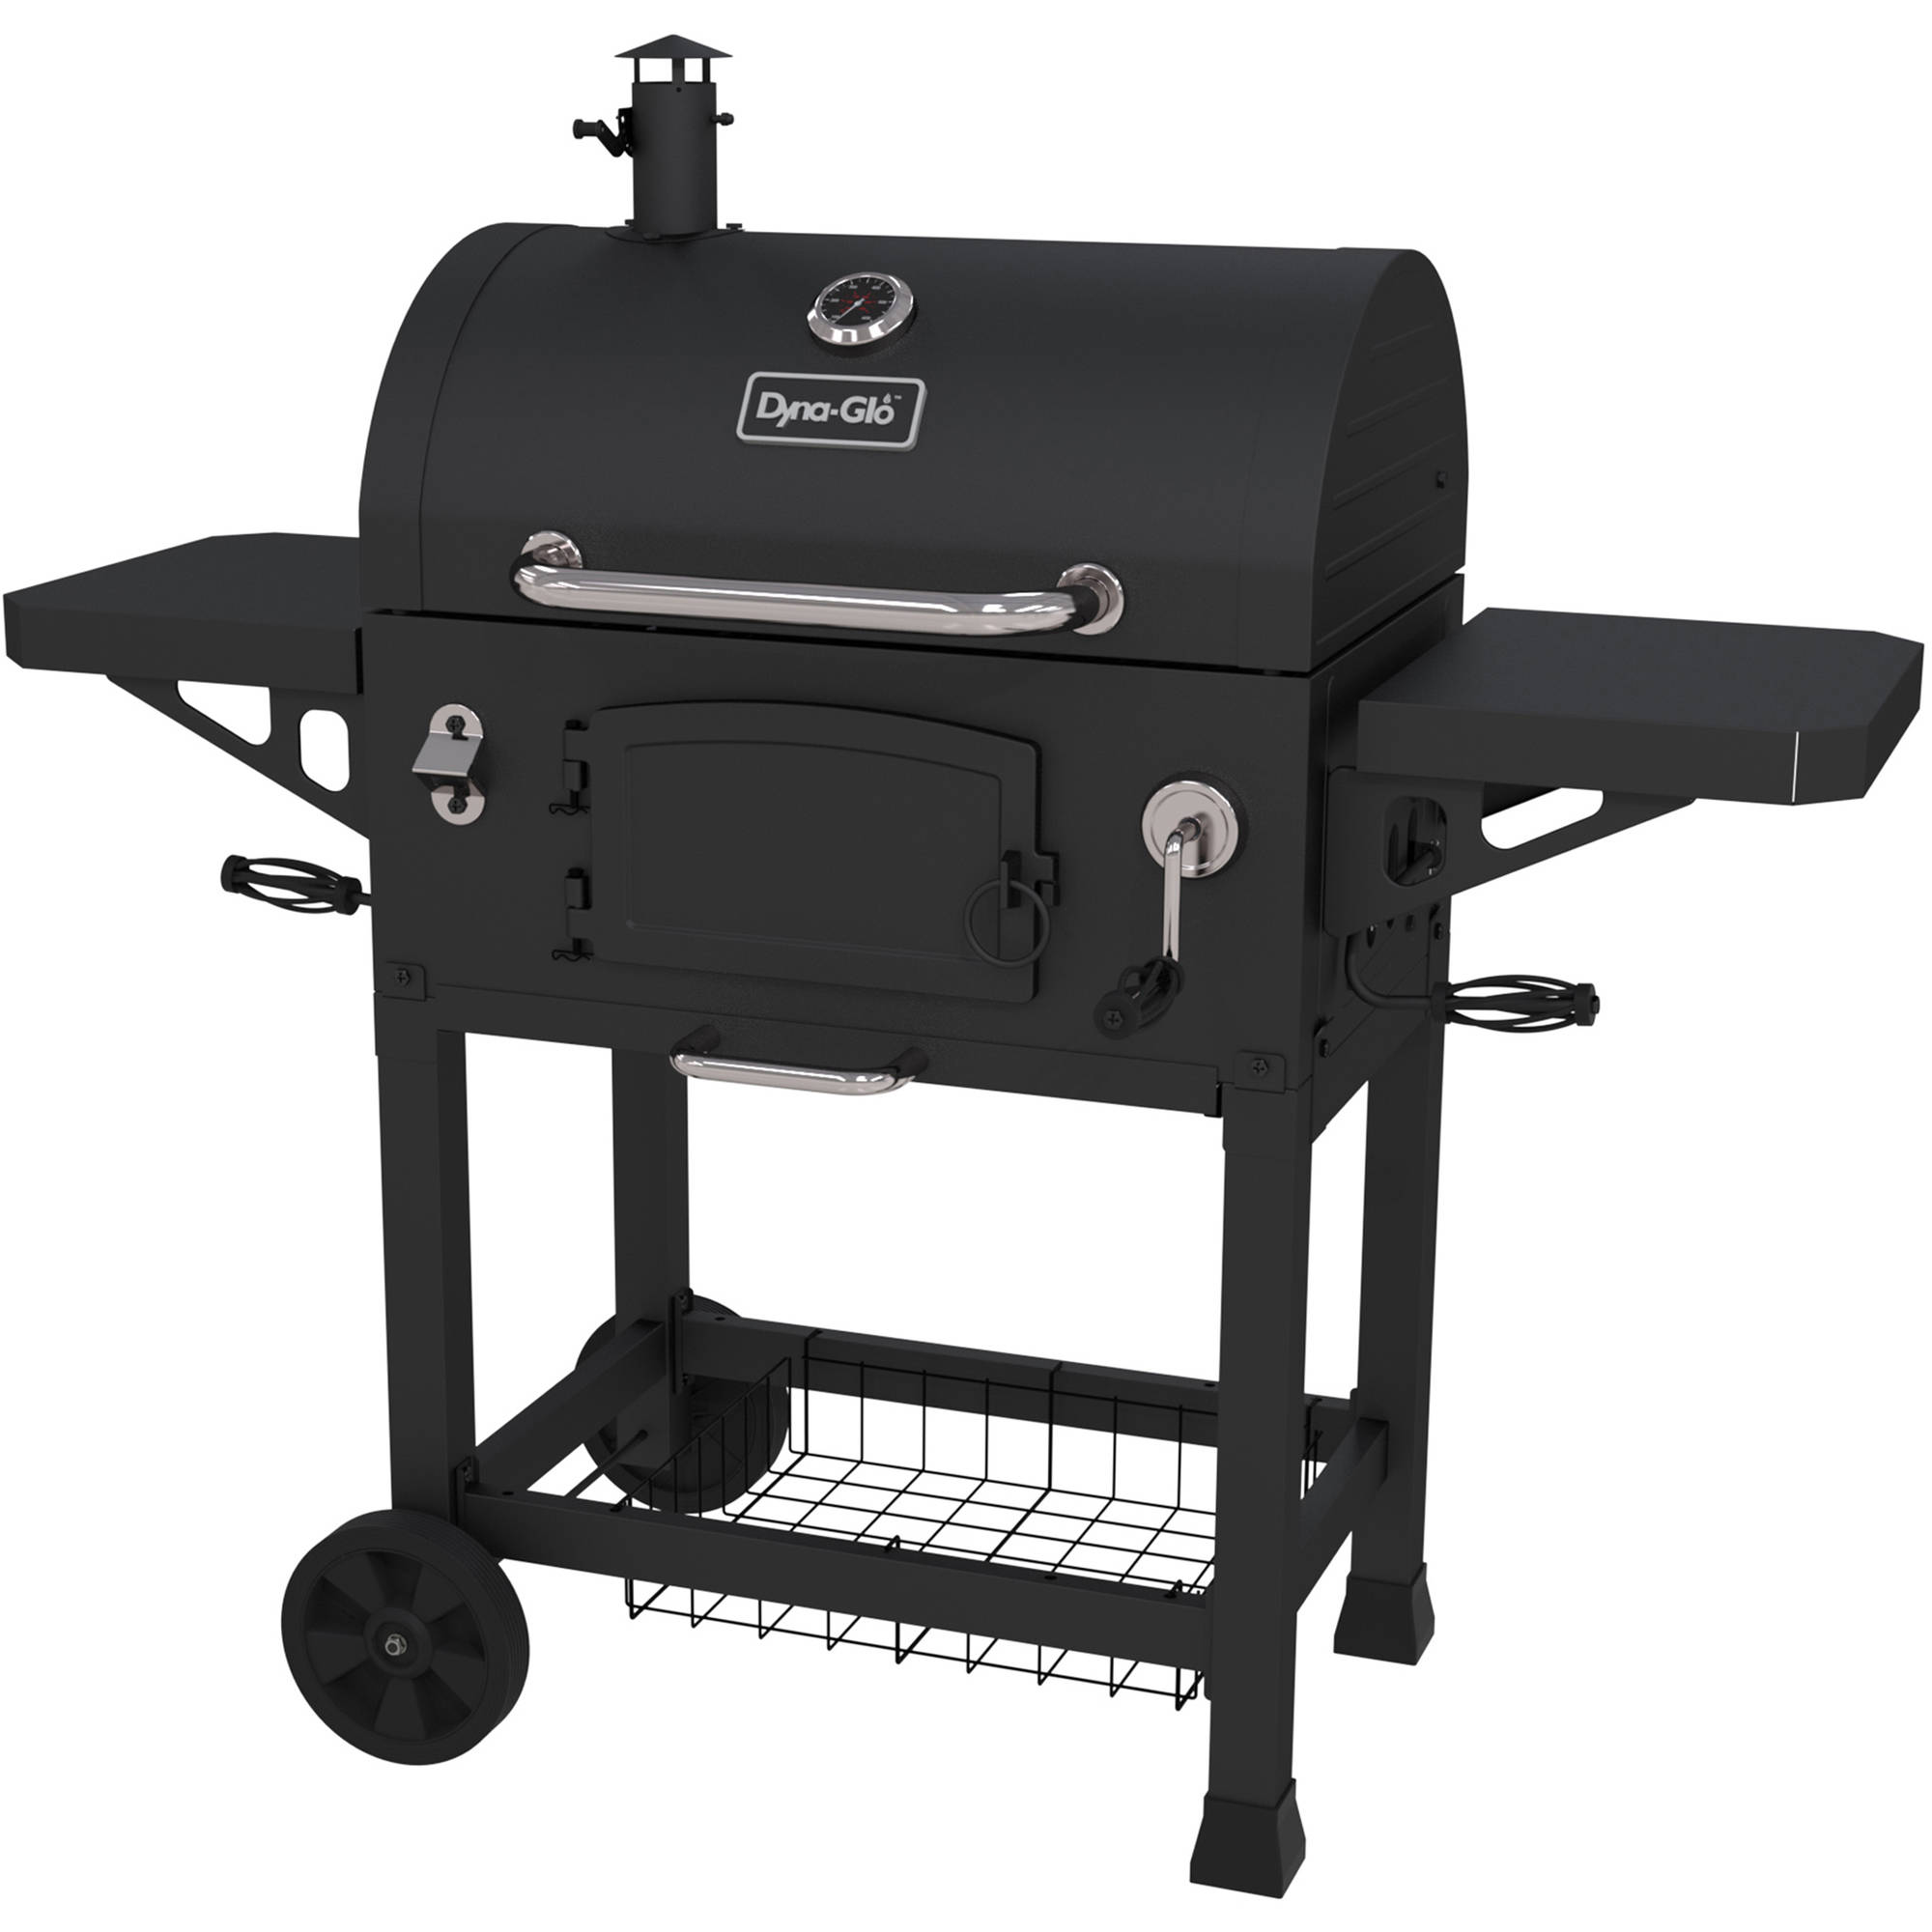 Dyna-Glo DGN486DNC-D Heavy-Duty Charcoal Grill by Charcoal Grills